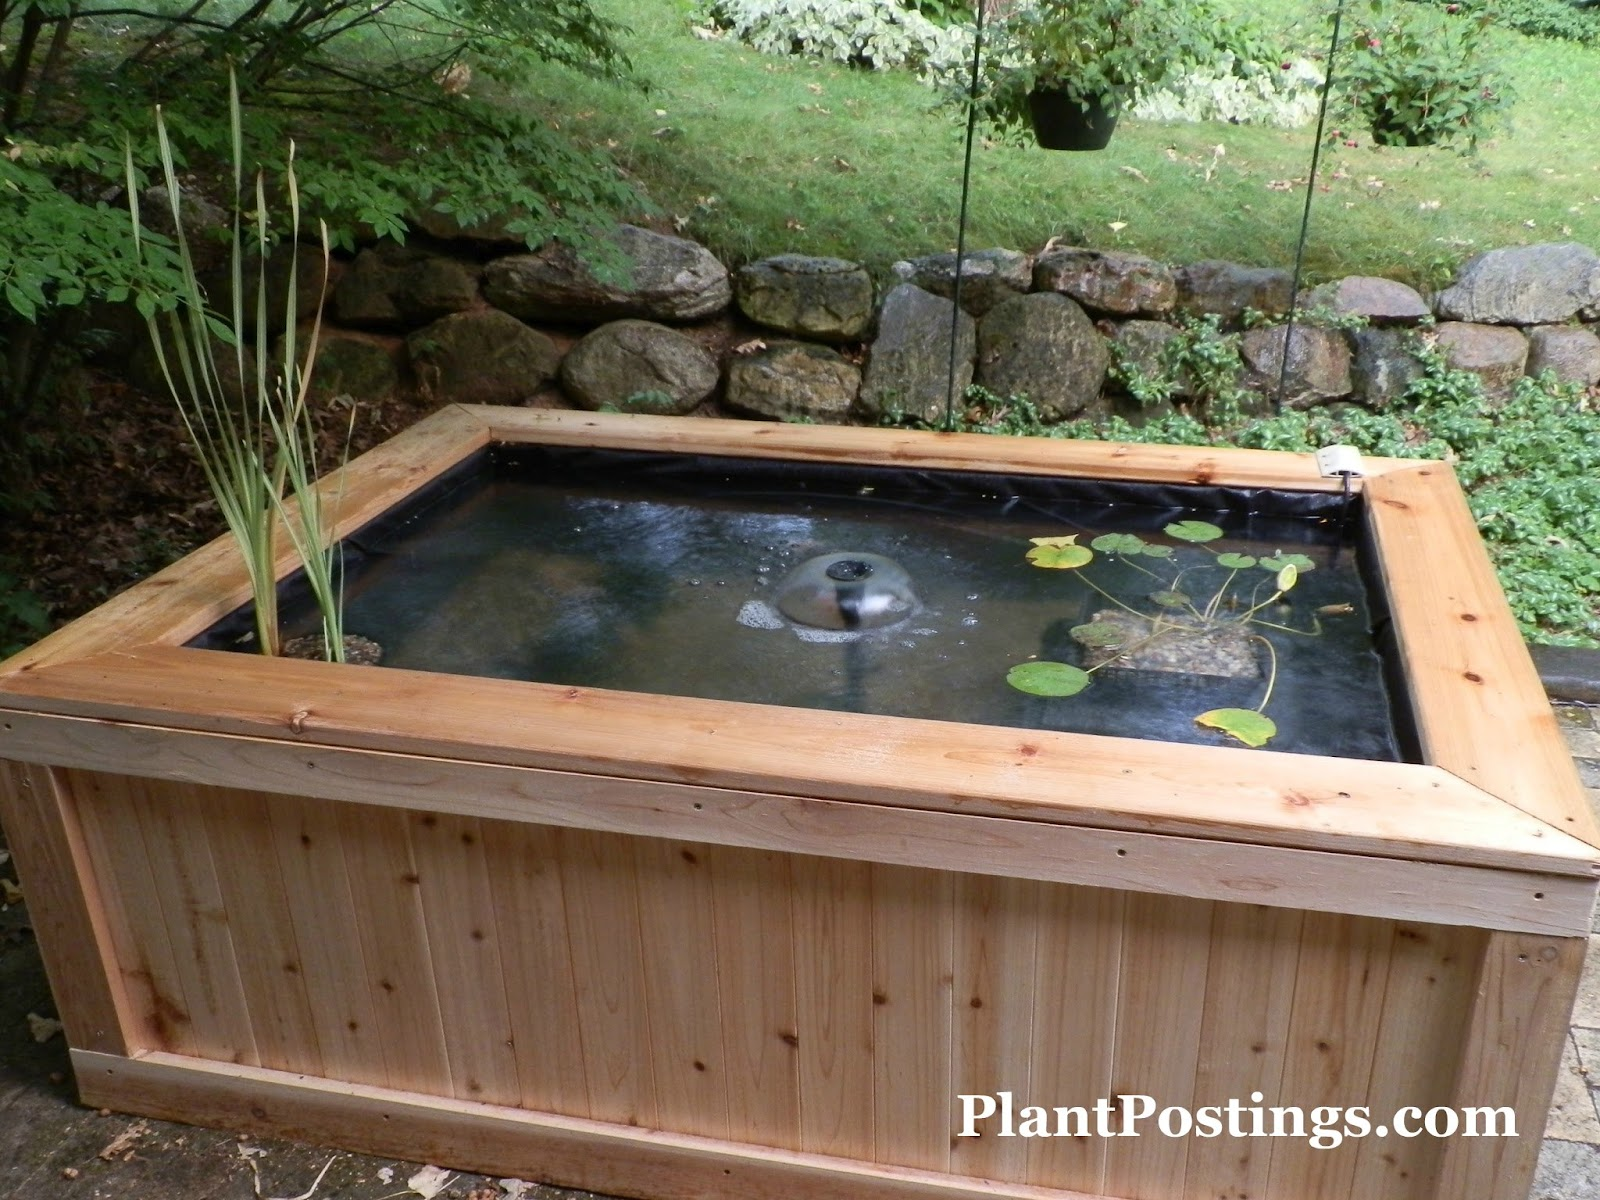 Plantpostings how to make an above ground pond for Mini fish pond design